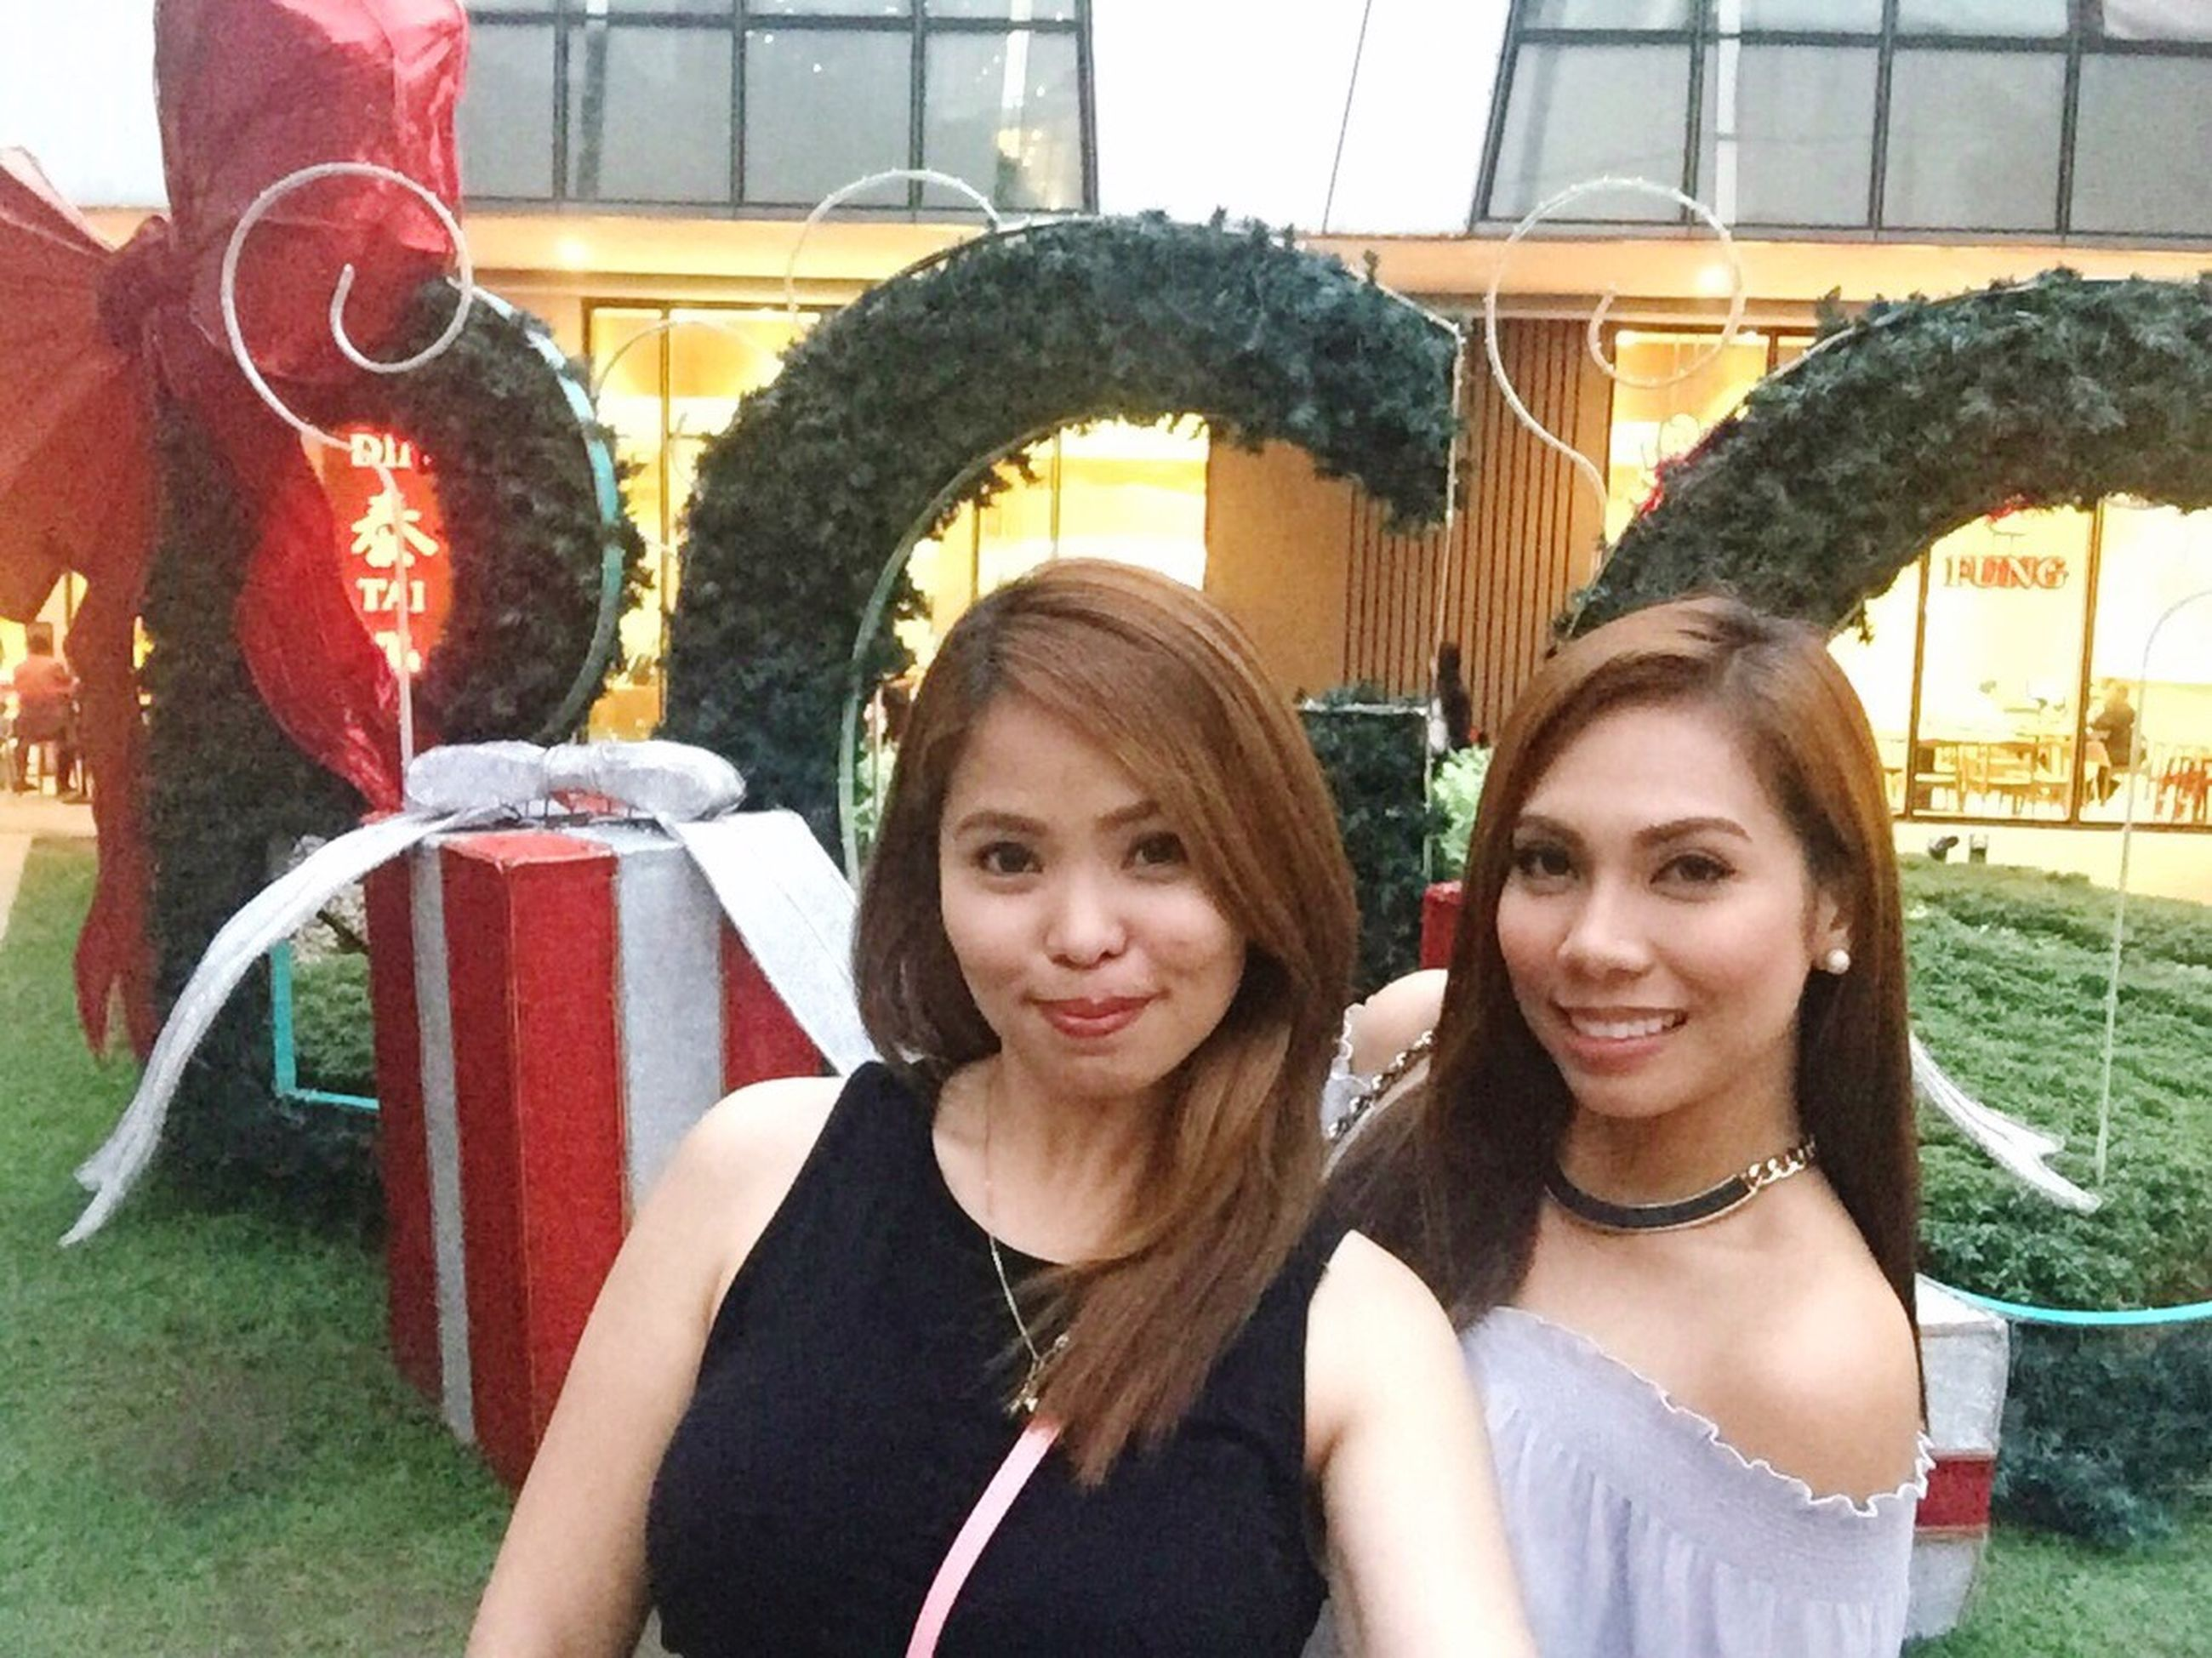 two people, smiling, looking at camera, portrait, headshot, happiness, adults only, day, outdoors, adult, young adult, real people, beautiful woman, young women, people, close-up, togetherness, cheerful, only women